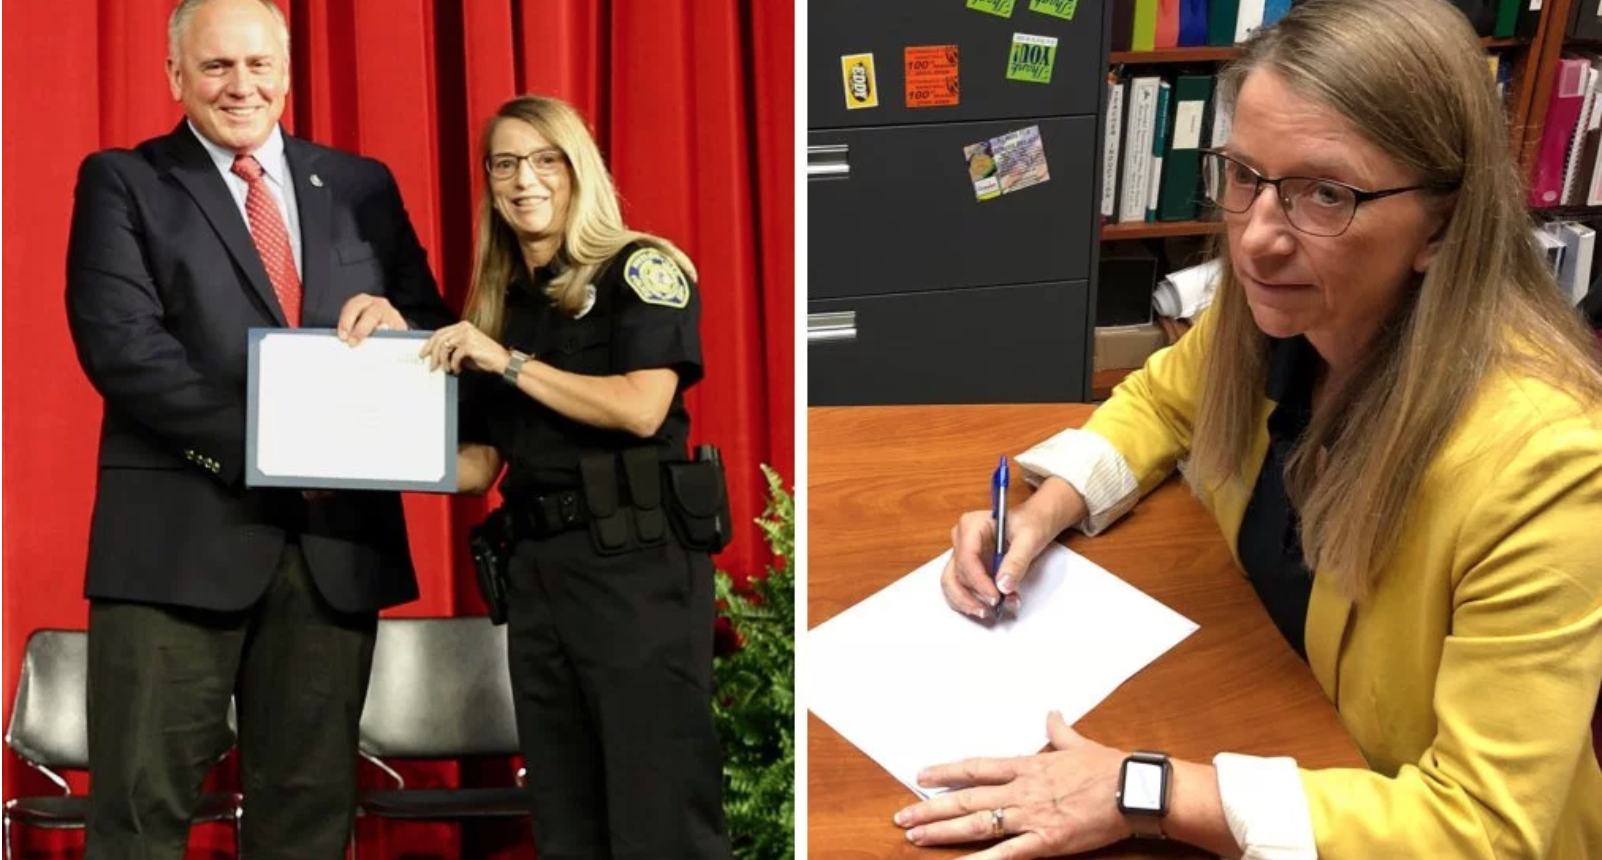 School Superintendent Becomes Cop to Protect Students